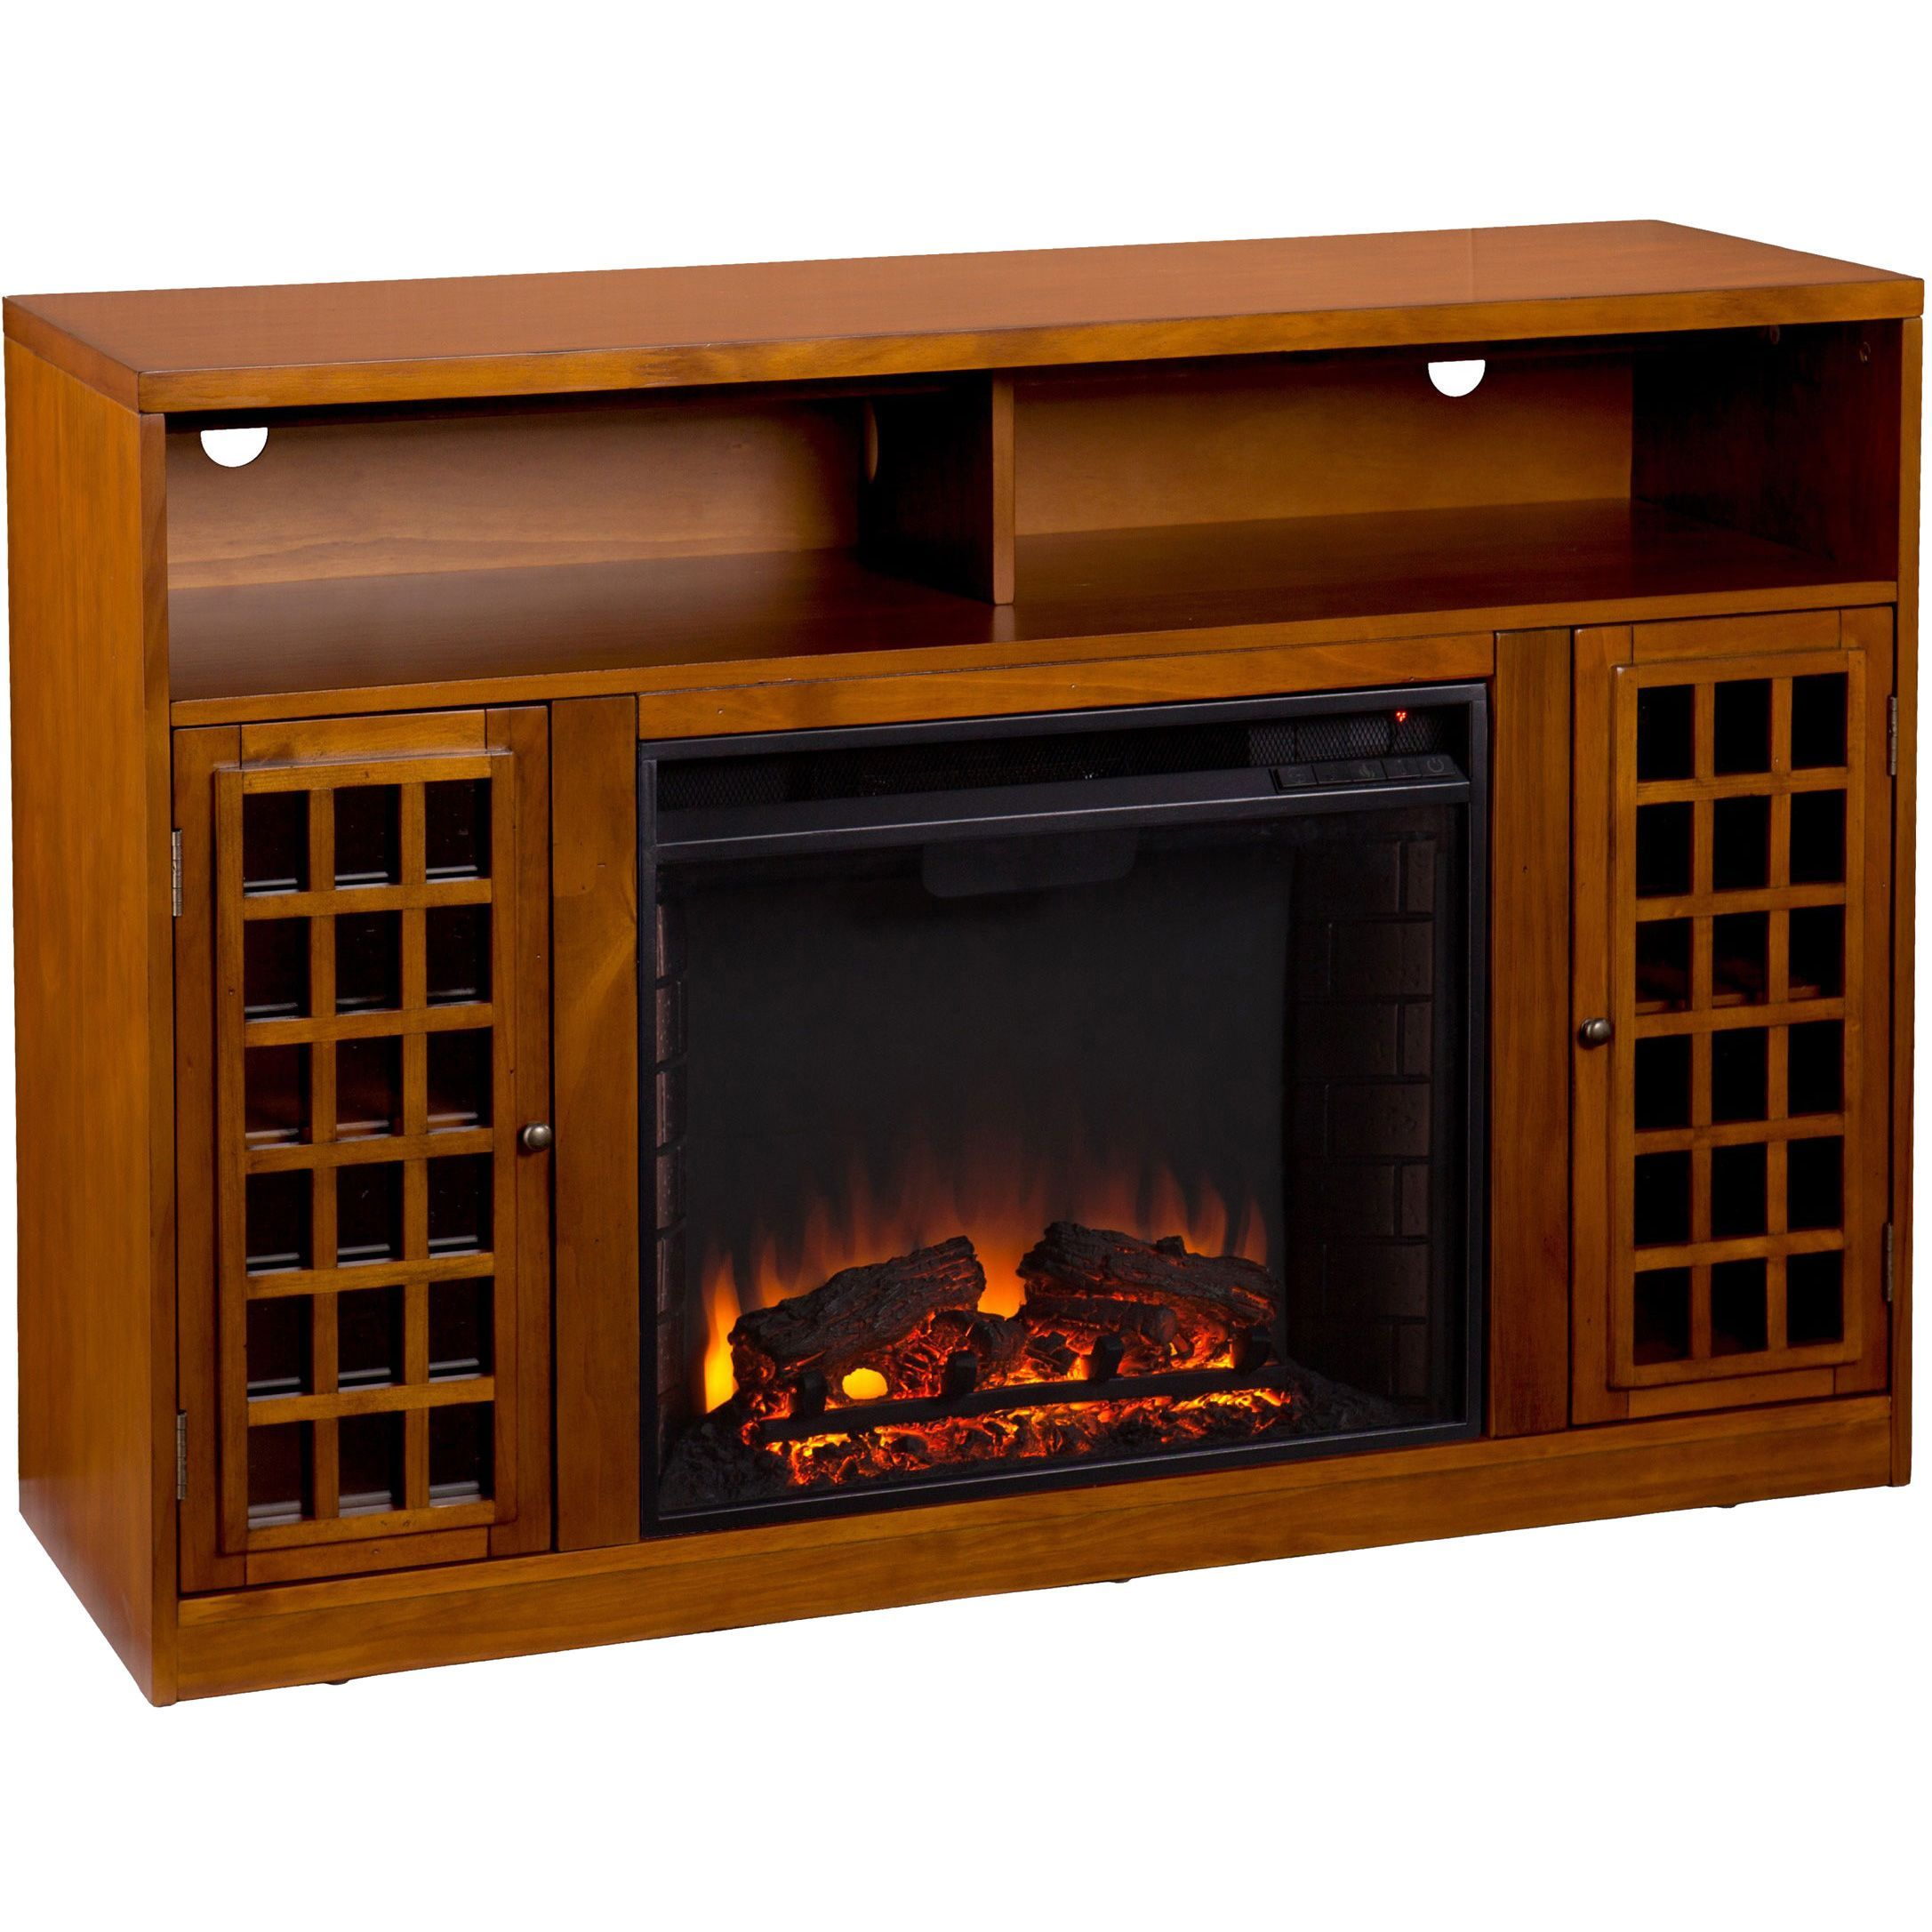 This unusual electric fireplace media console does double duty as a